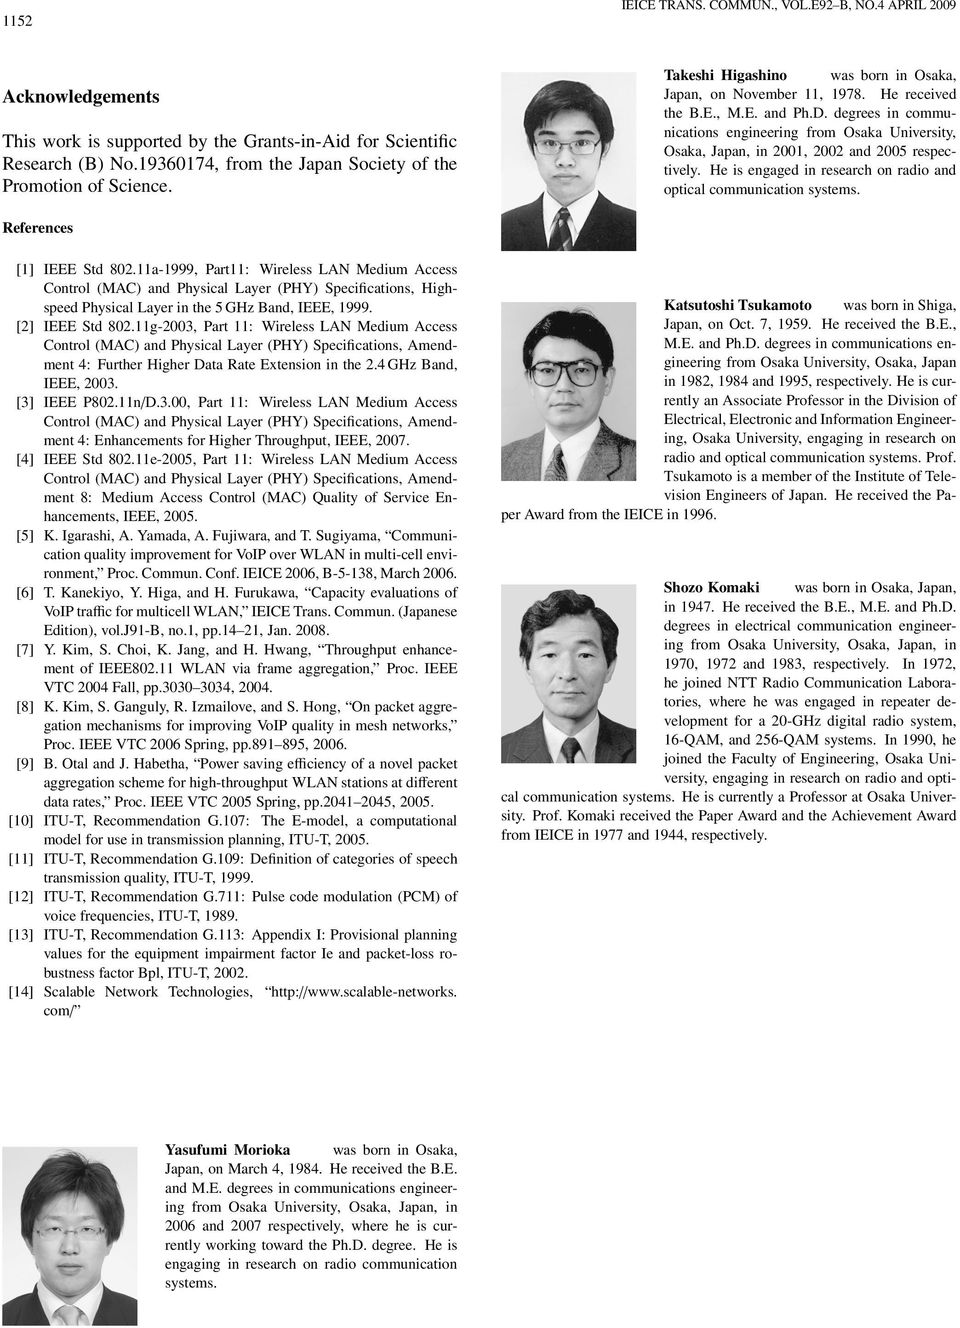 degrees in communications engineering from Osaka University, Osaka, Japan, in 2001, 2002 and 2005 respectively. He is engaged in research on radio and optical communication systems.